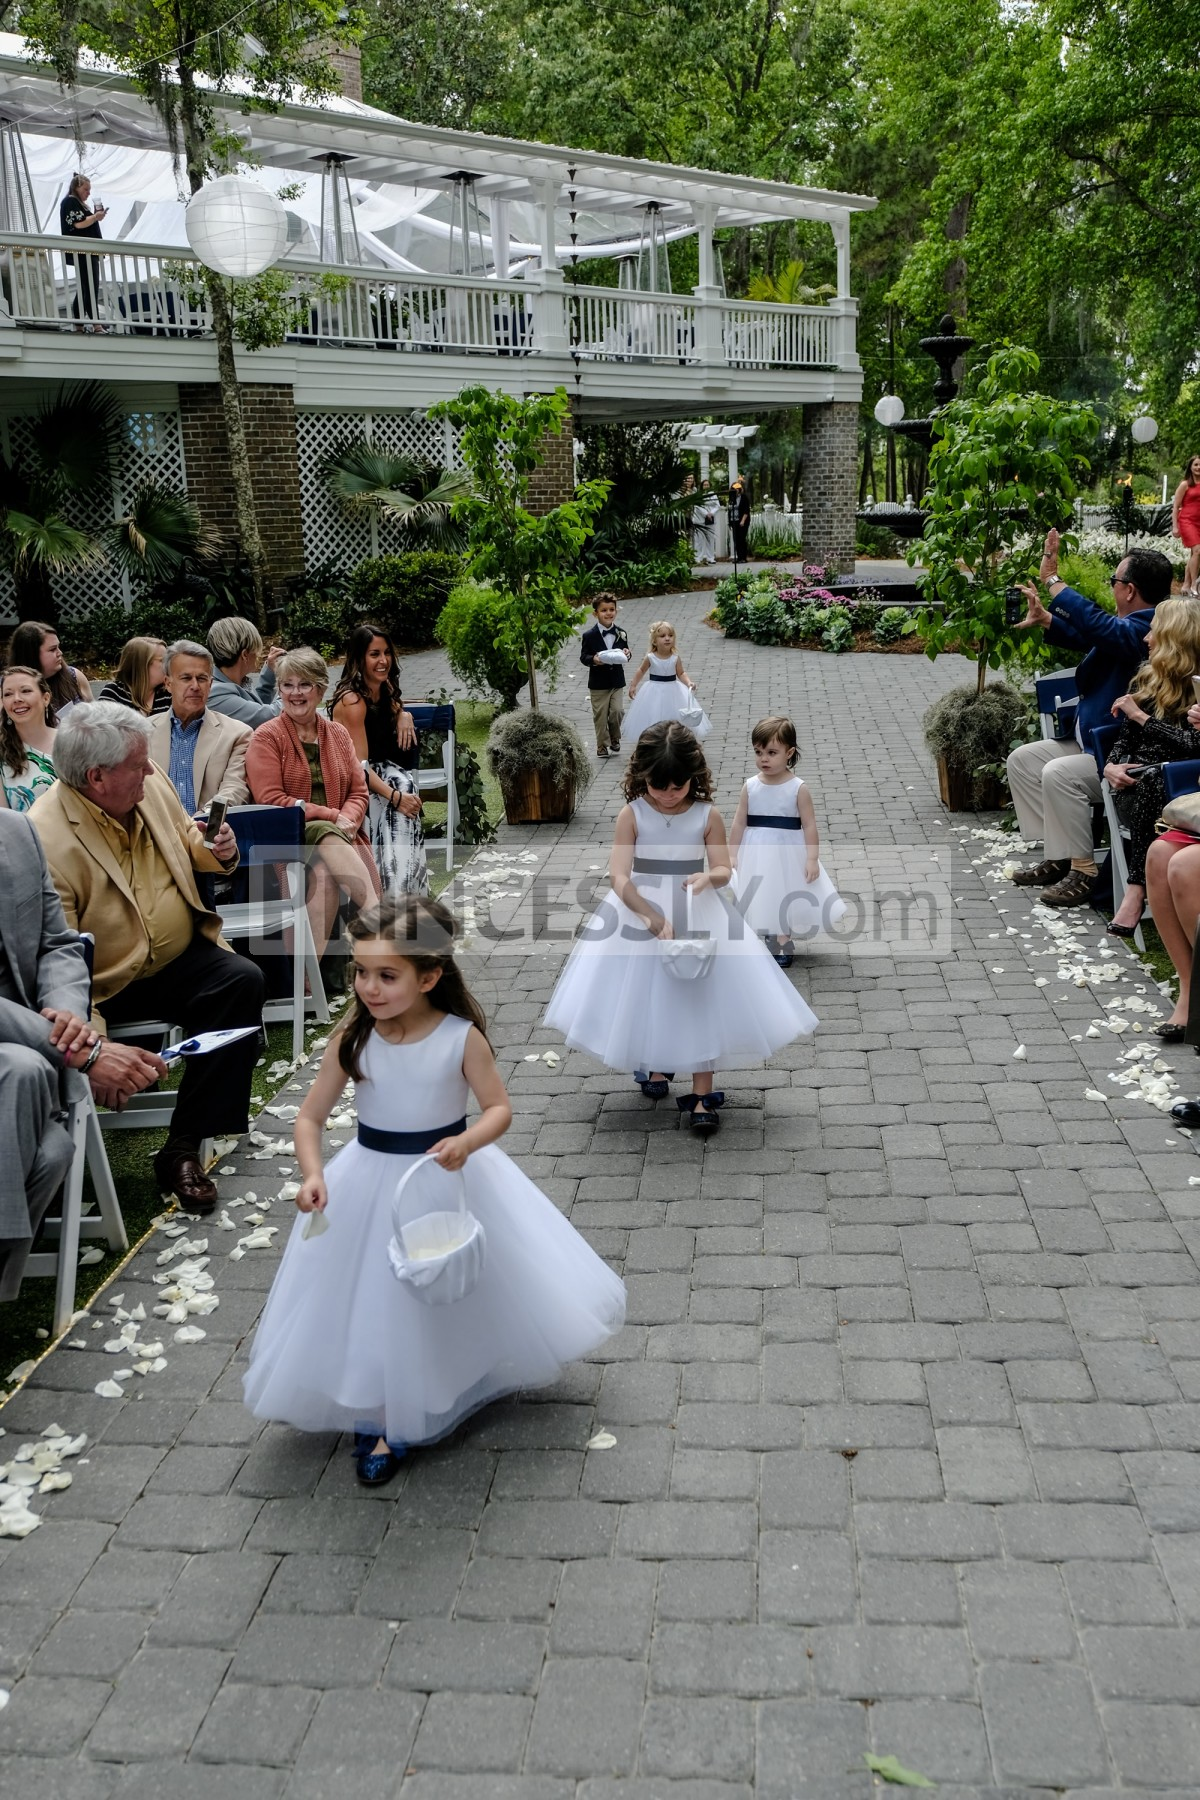 Princess satin tulle wedding baby girl dress with navy blue sash